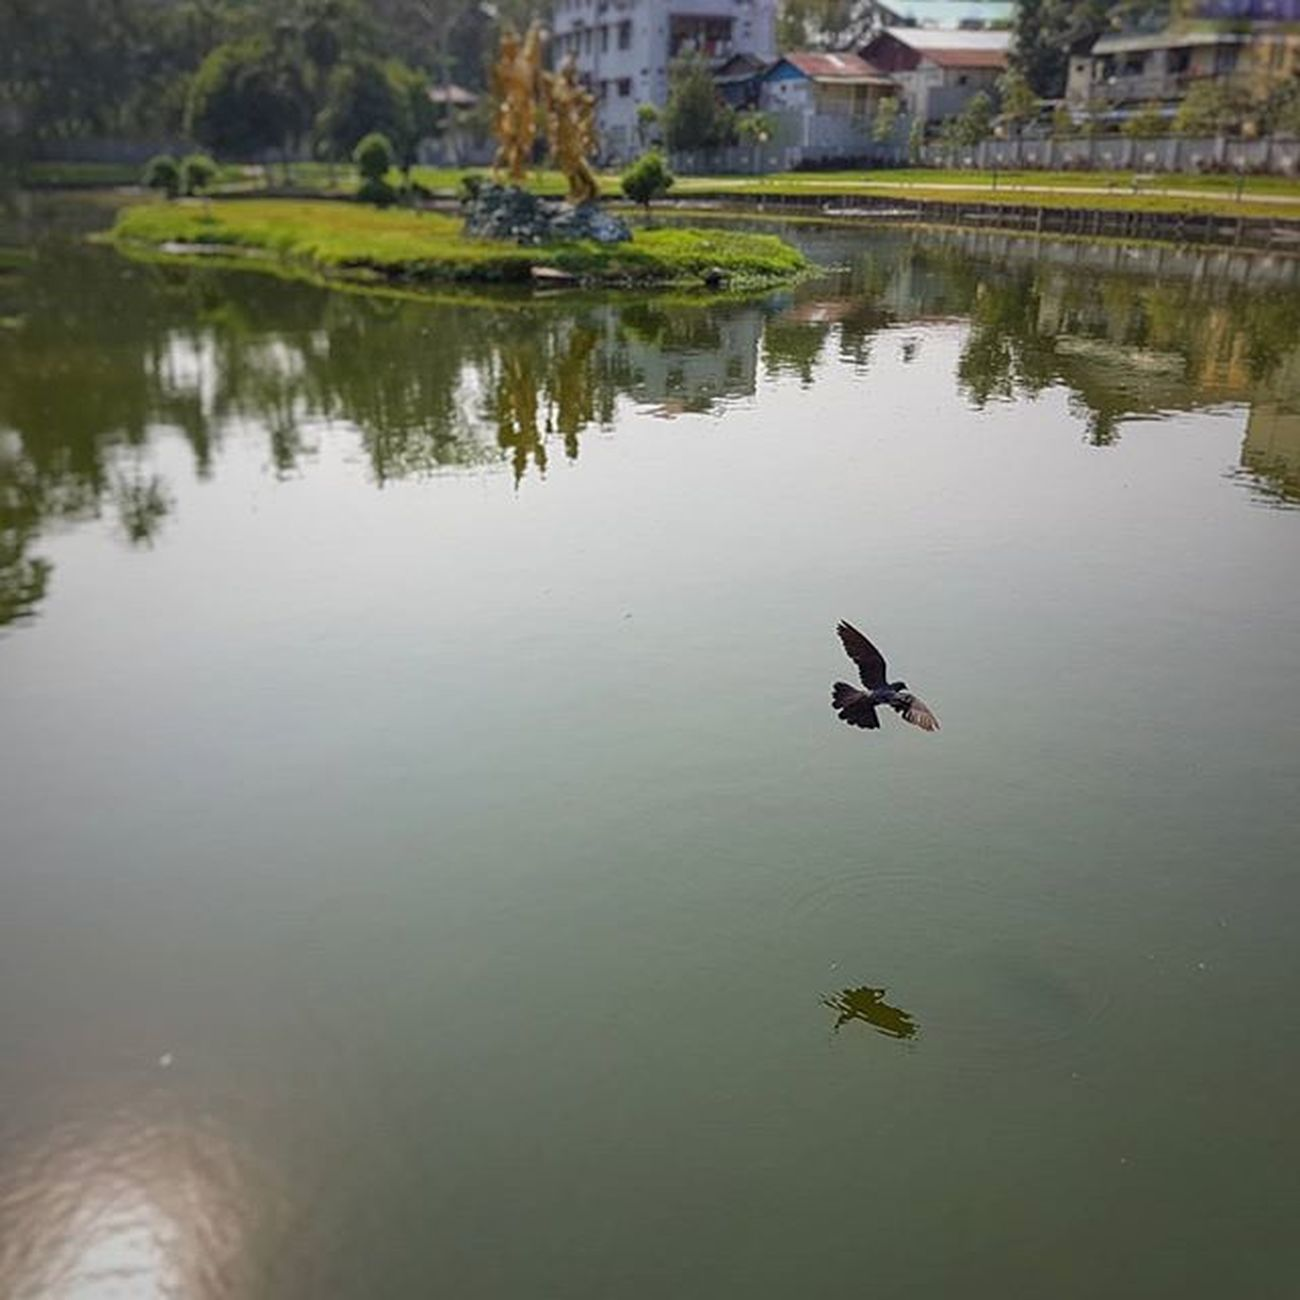 Thiri Nandar Lake Igersmyanmar Myanmar Burma Yourworldgallery Instagood Instagram Travelgood Choose2create Vacationinstyle Yangon Rangoon Water Lake AOV Artofvisuals Instagrammers Pigeon